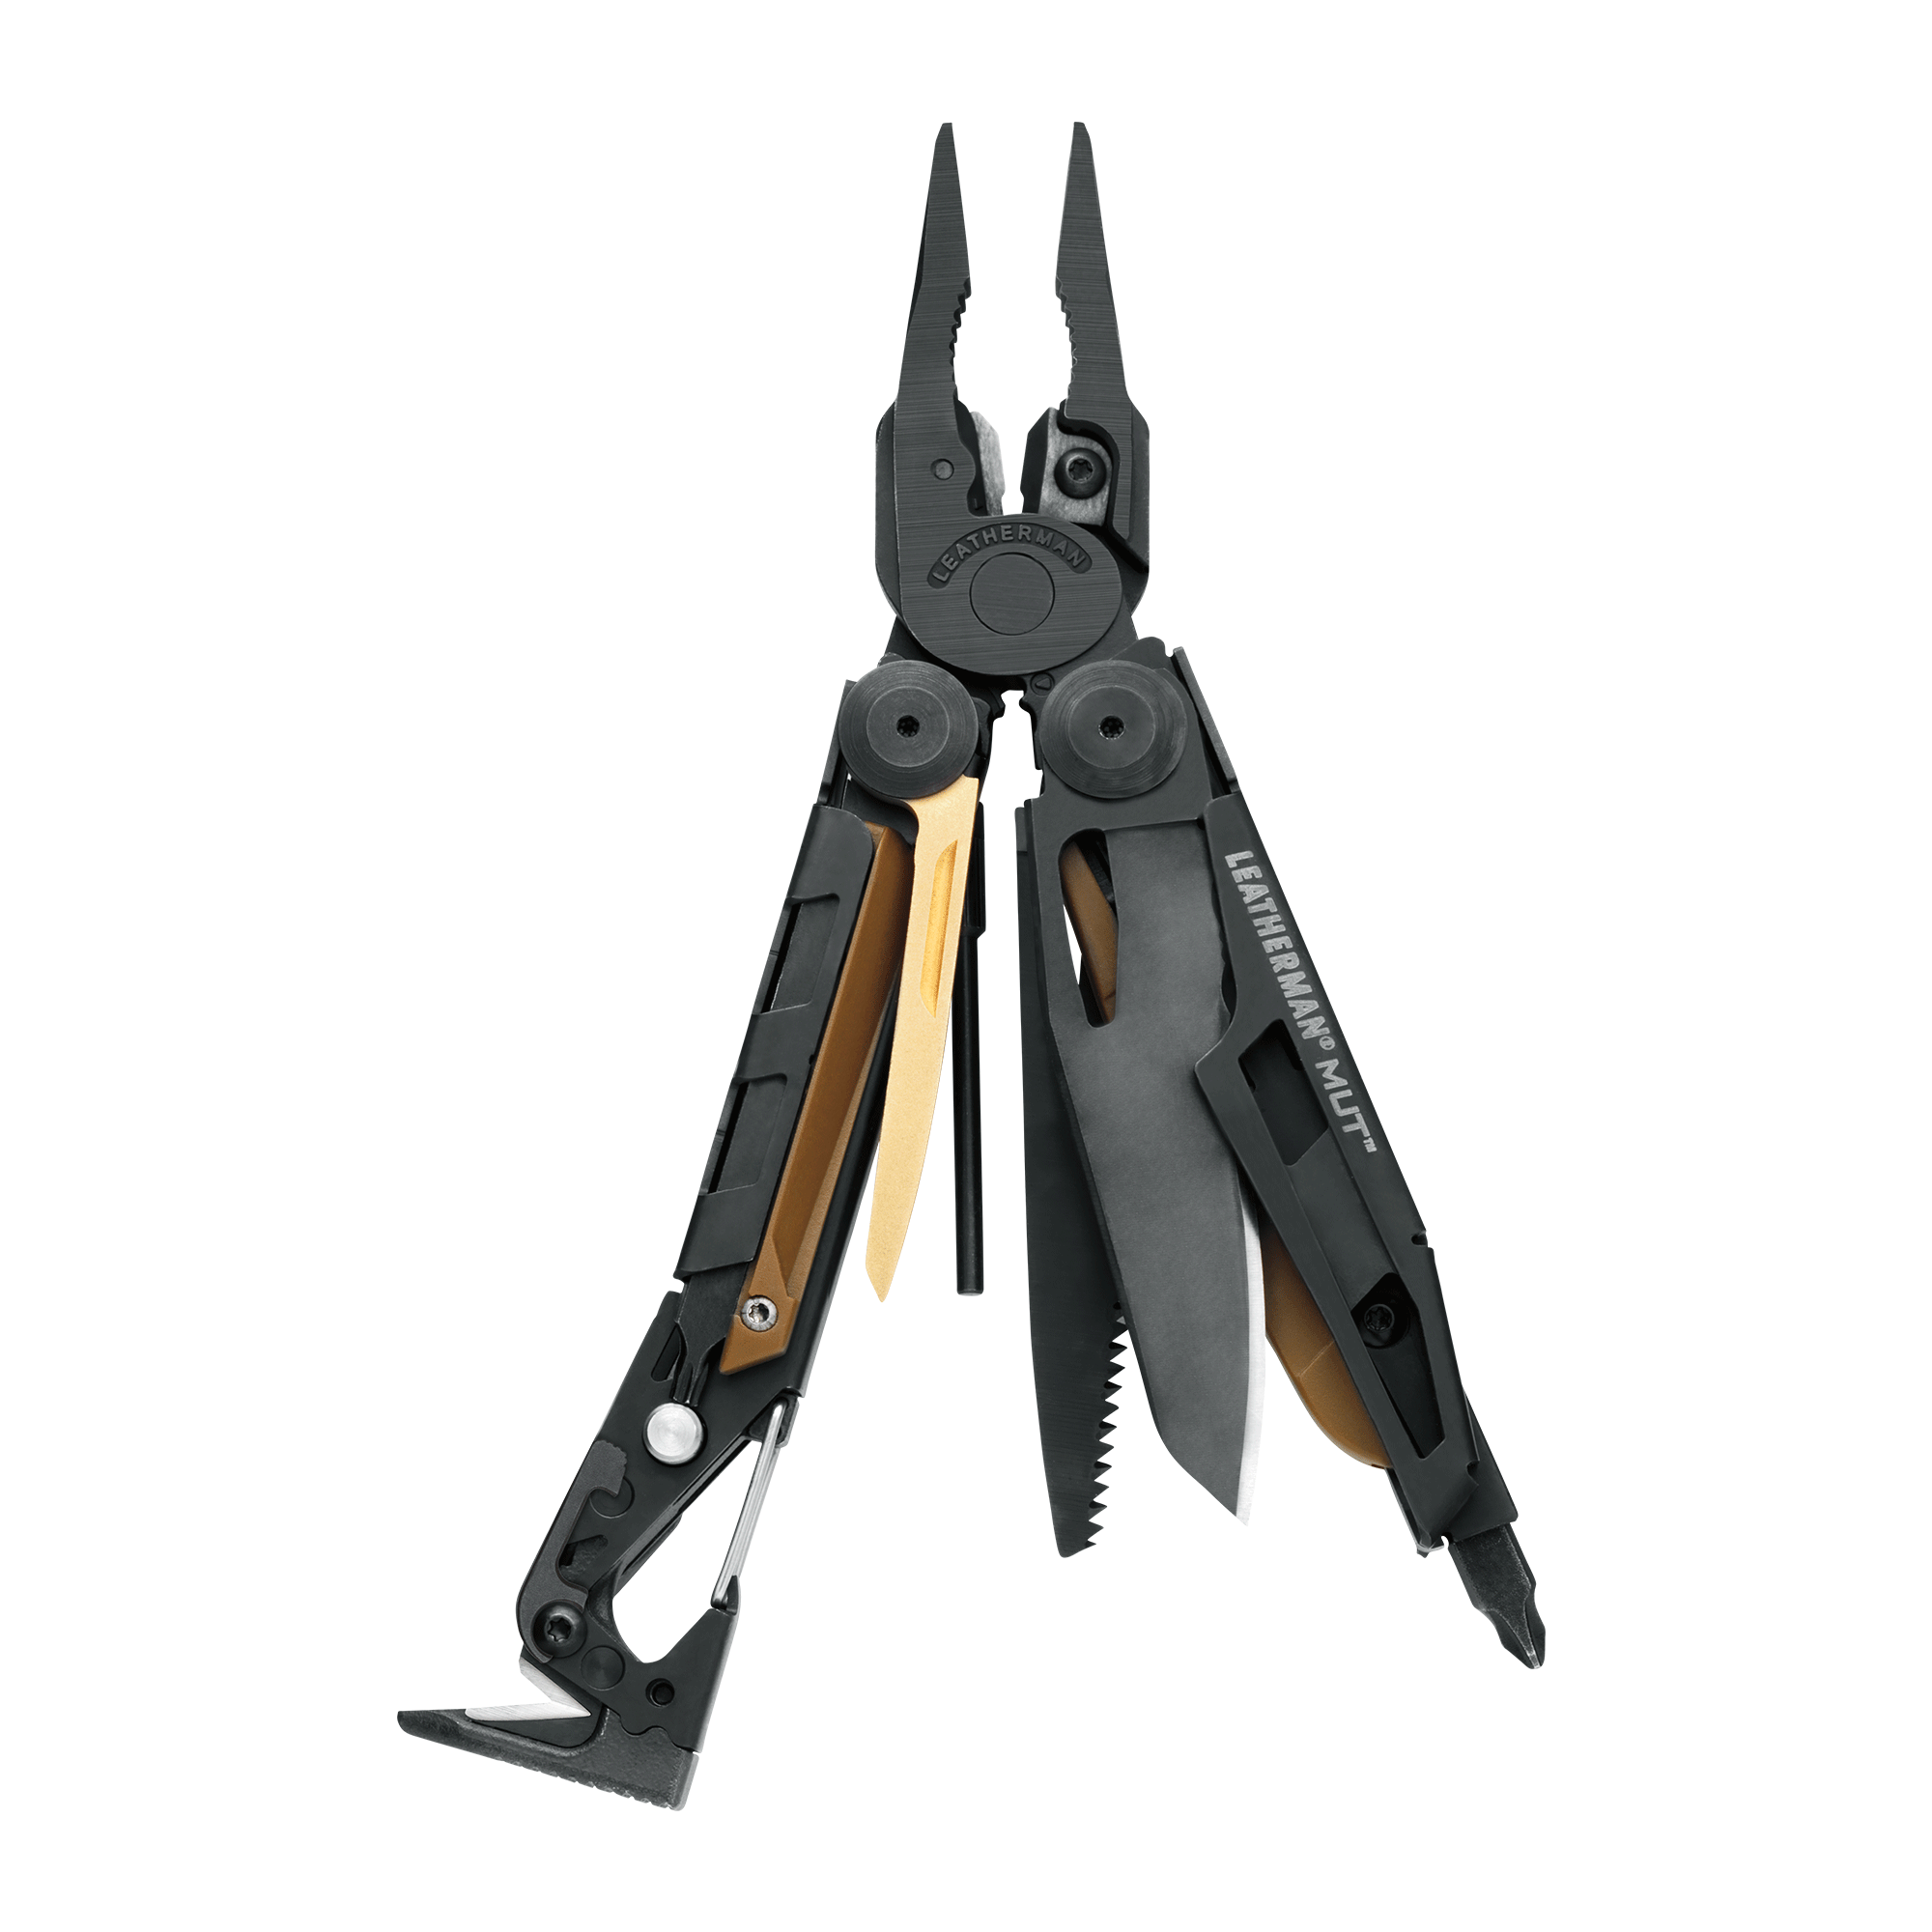 Leatherman clip mut. In multi tool